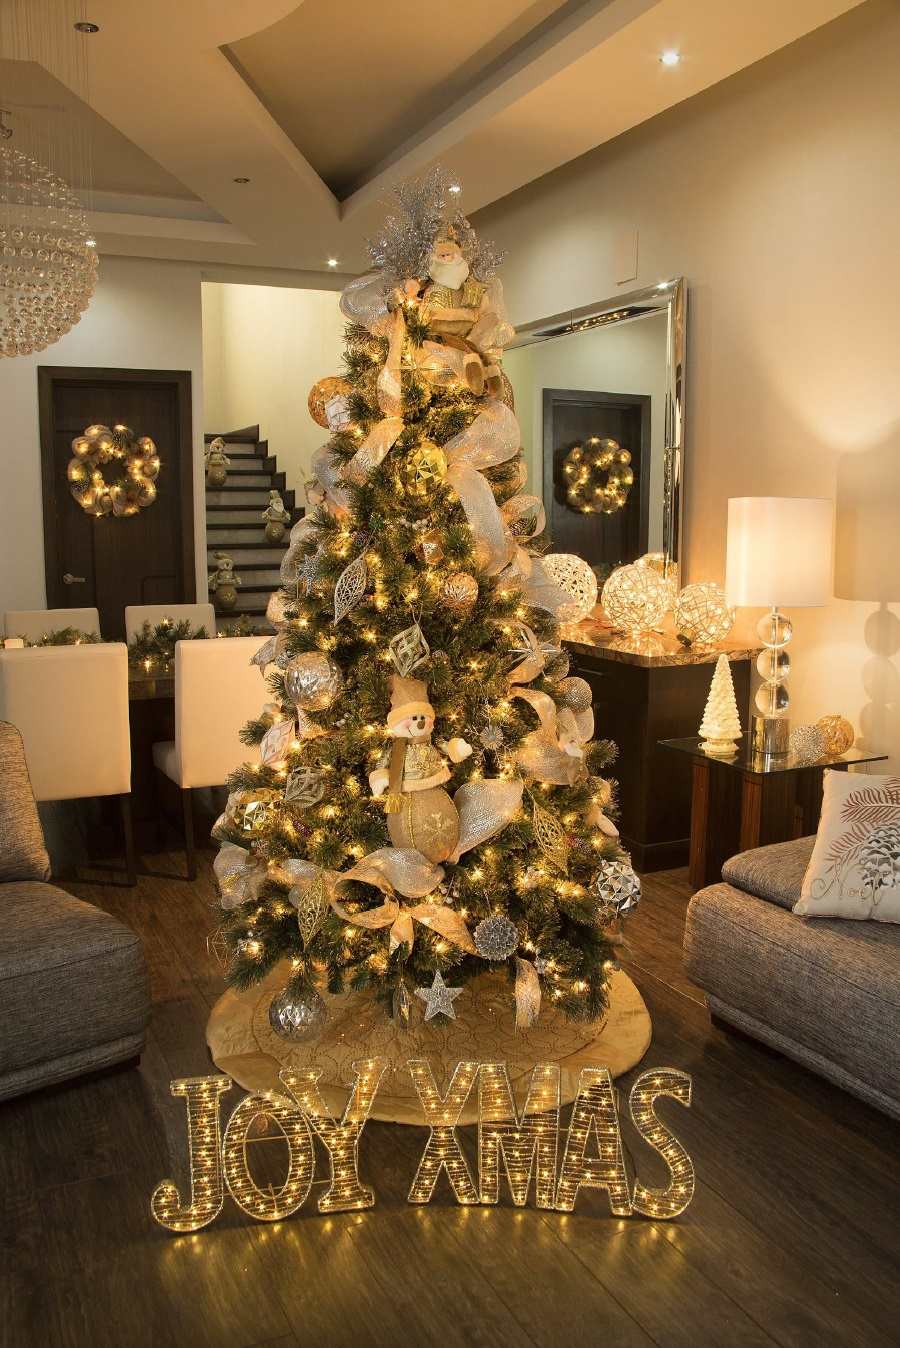 Tendencias para decorar en navidad 2017 2018 for Decoracion 2017